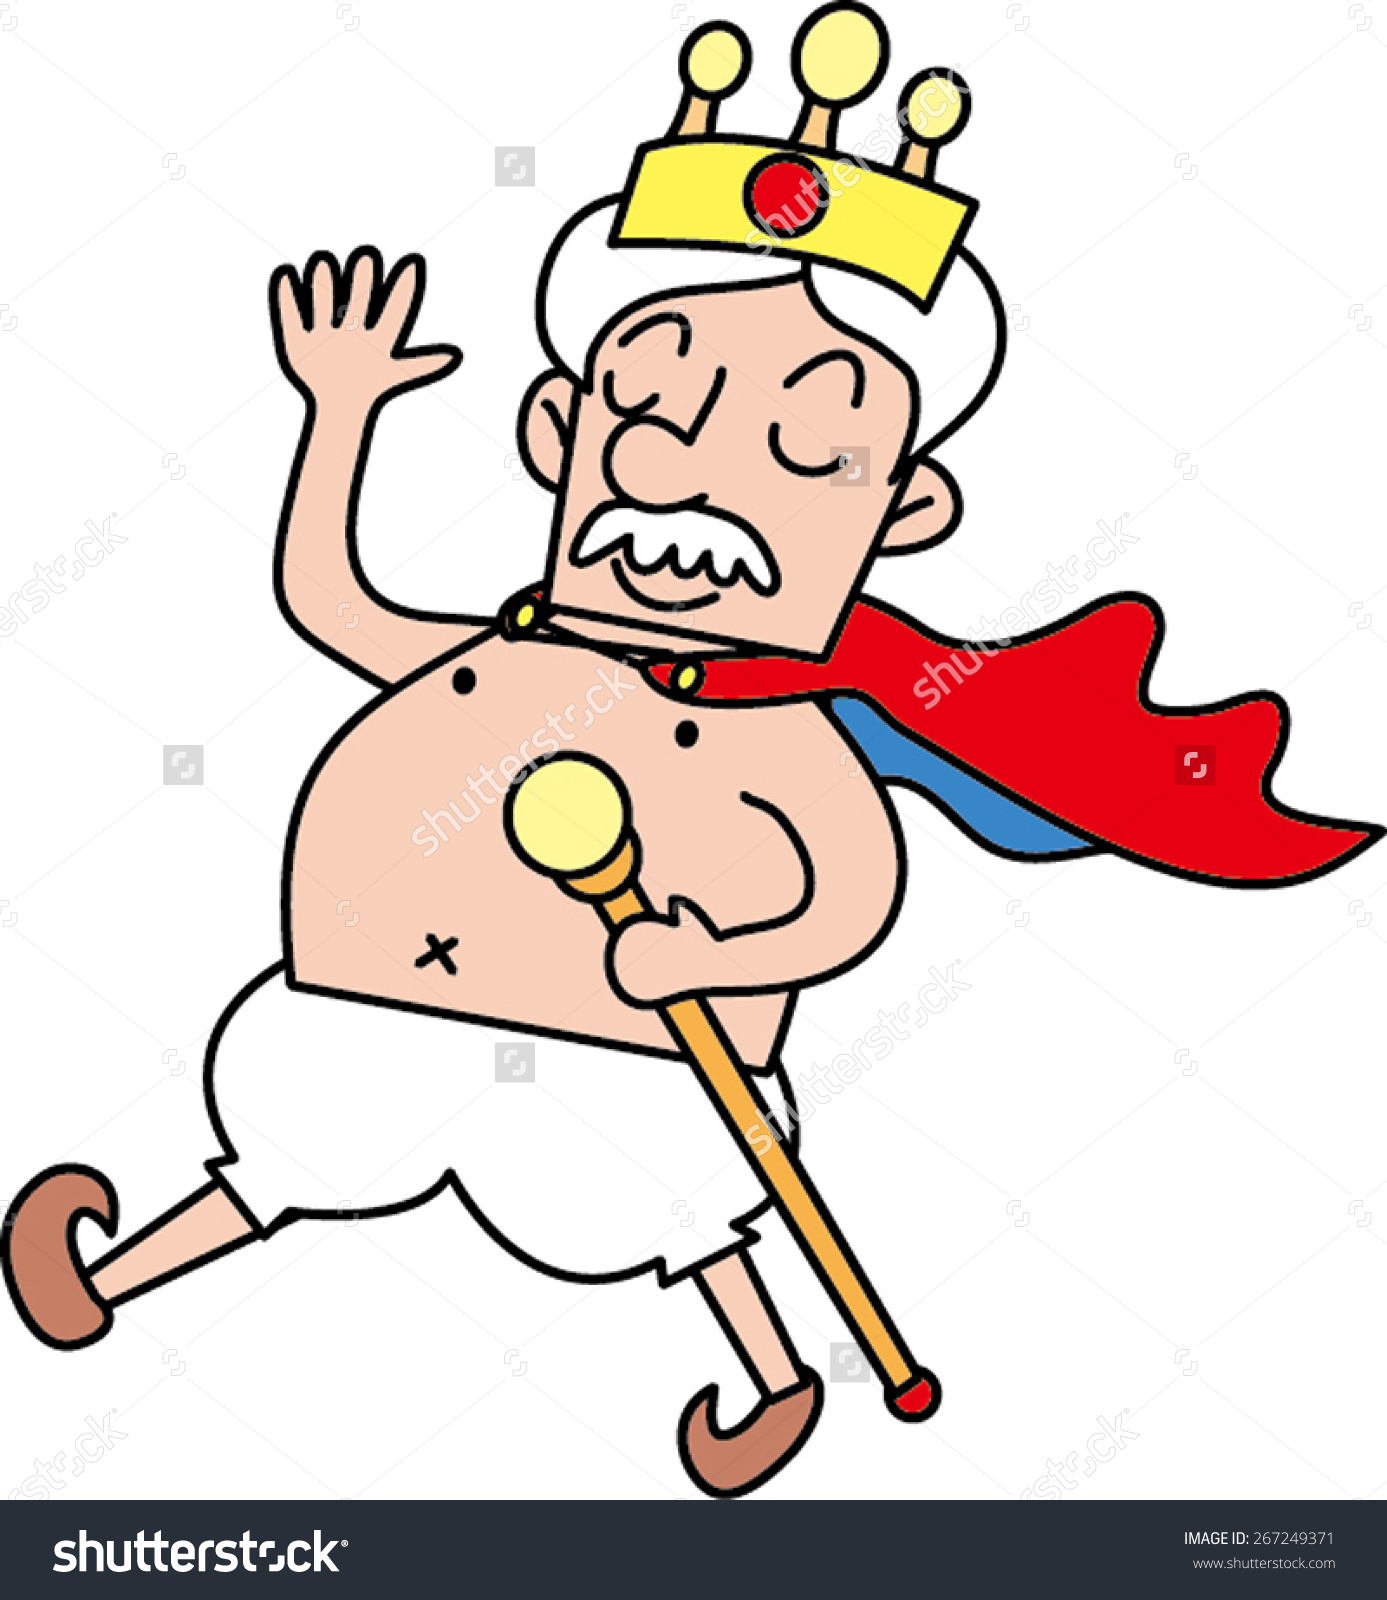 Emperors new clothes clipart.